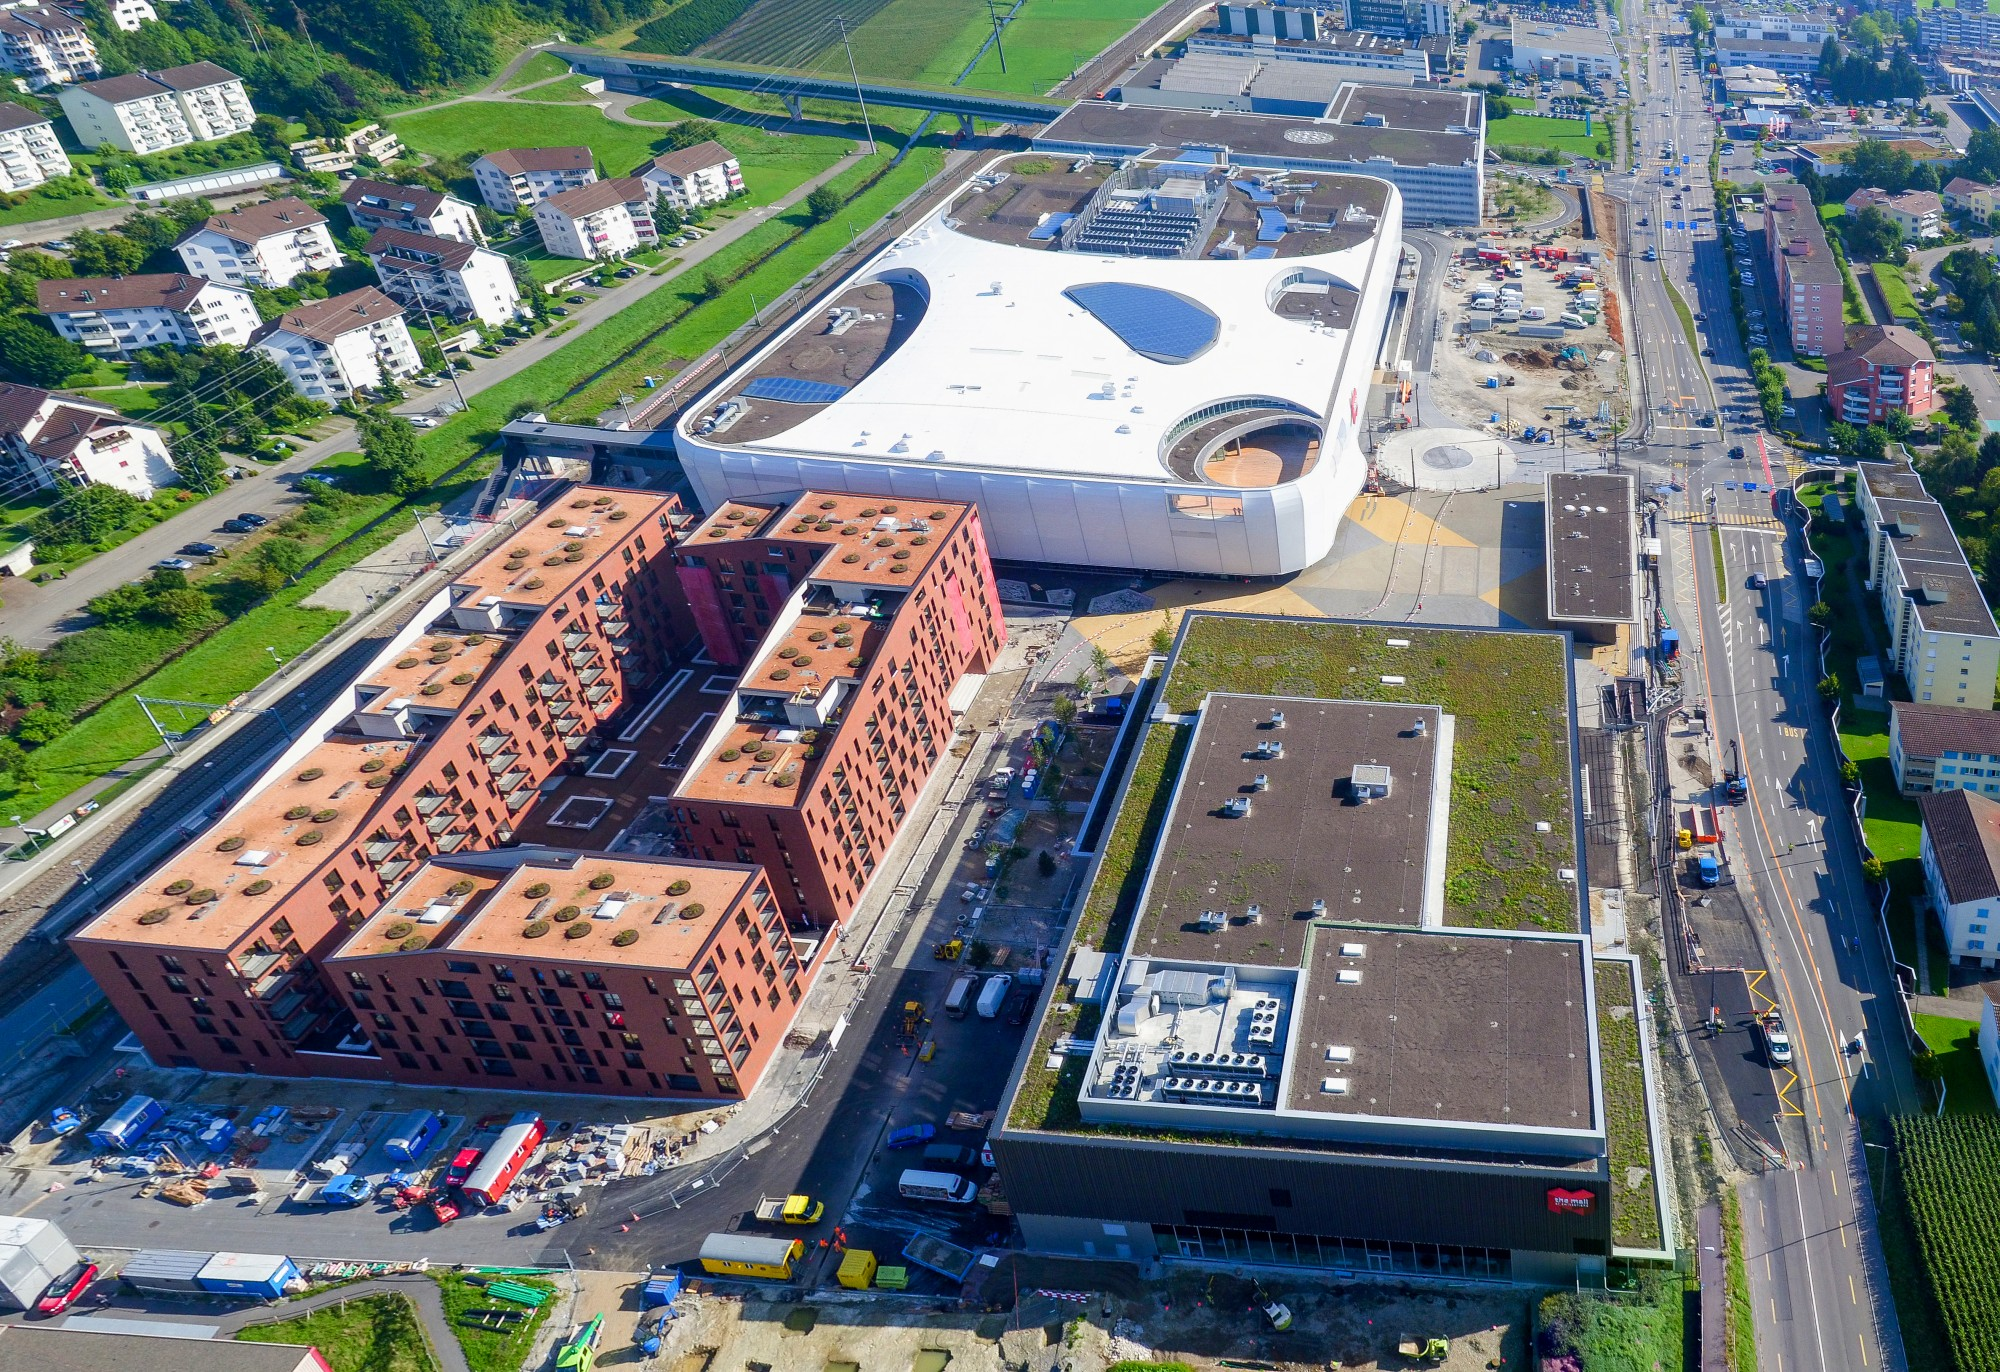 Mall of Switzerland Drone